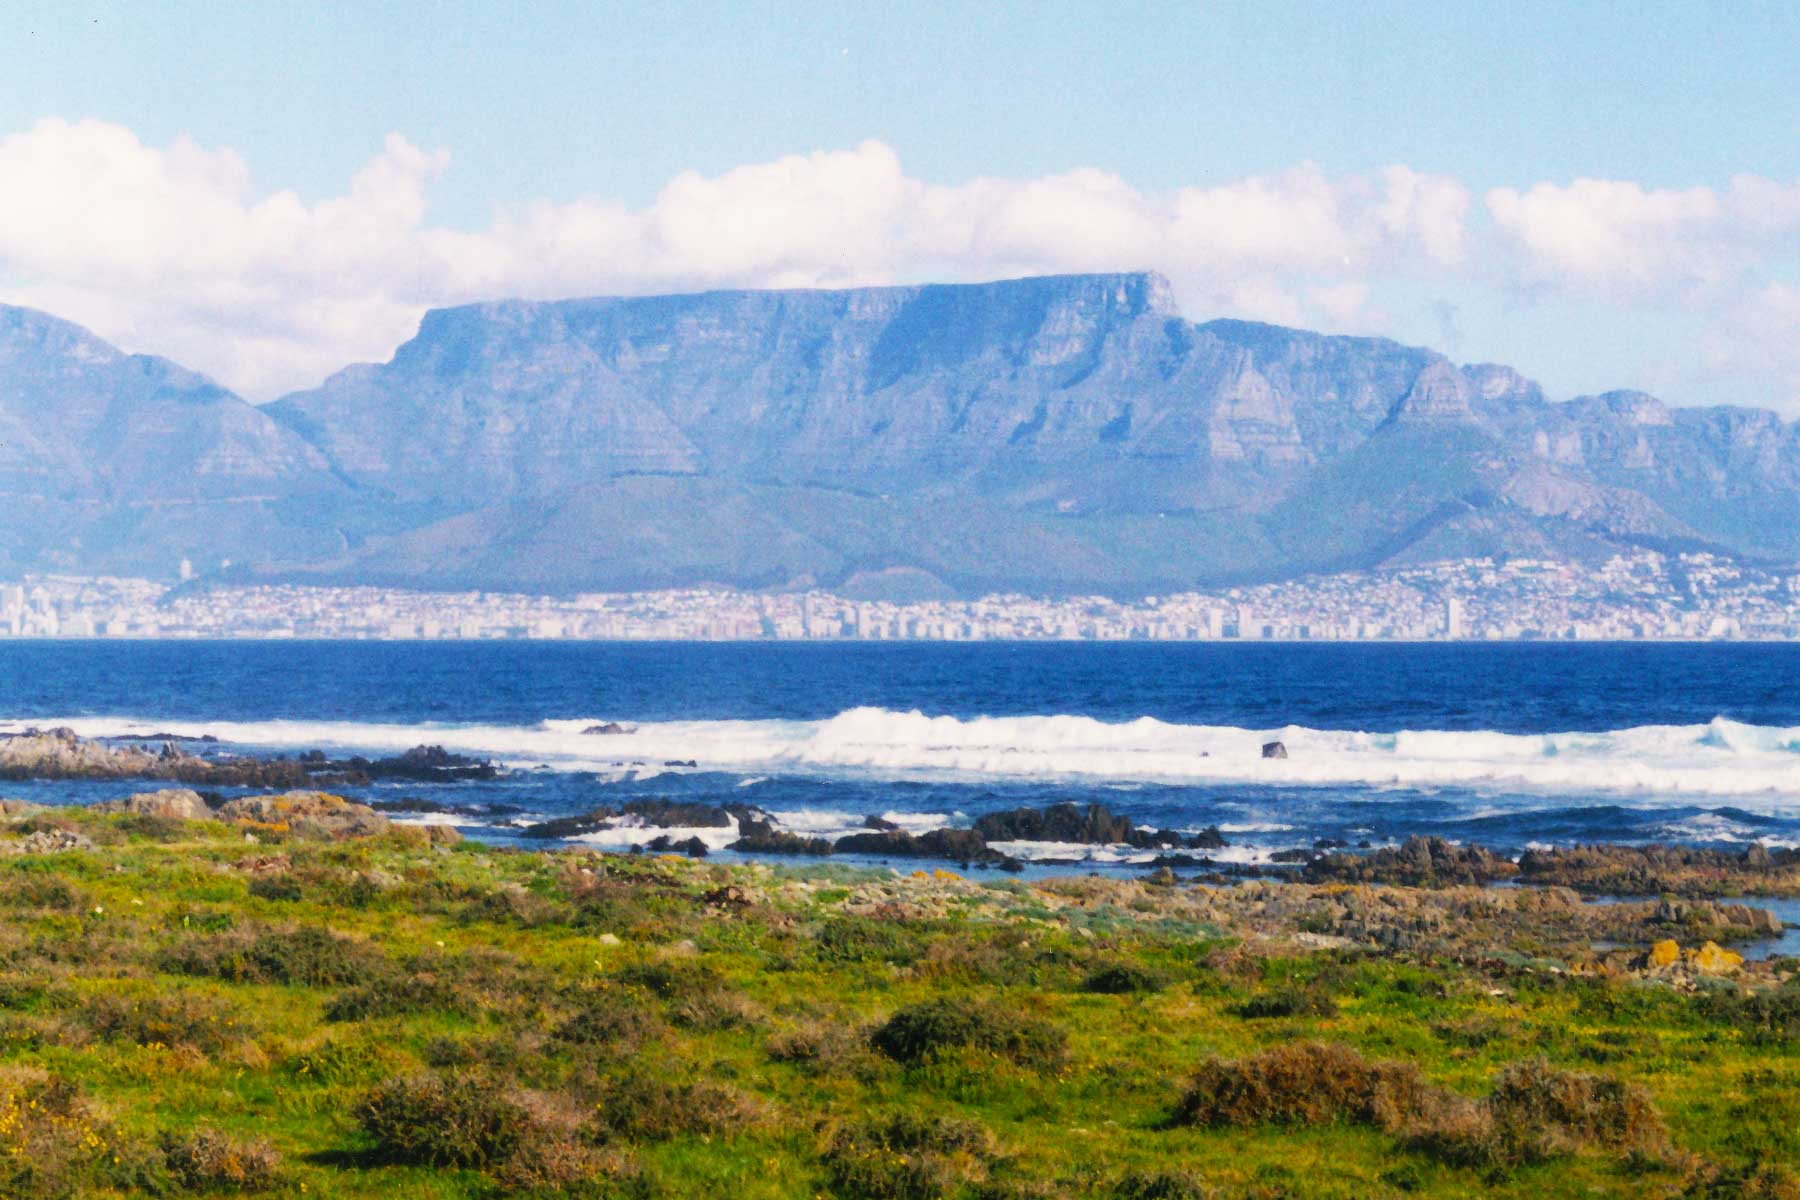 Table Mountain - Robin Island - Cape Town - Steven Andrew Martin PhD - South Africa Photo Journal